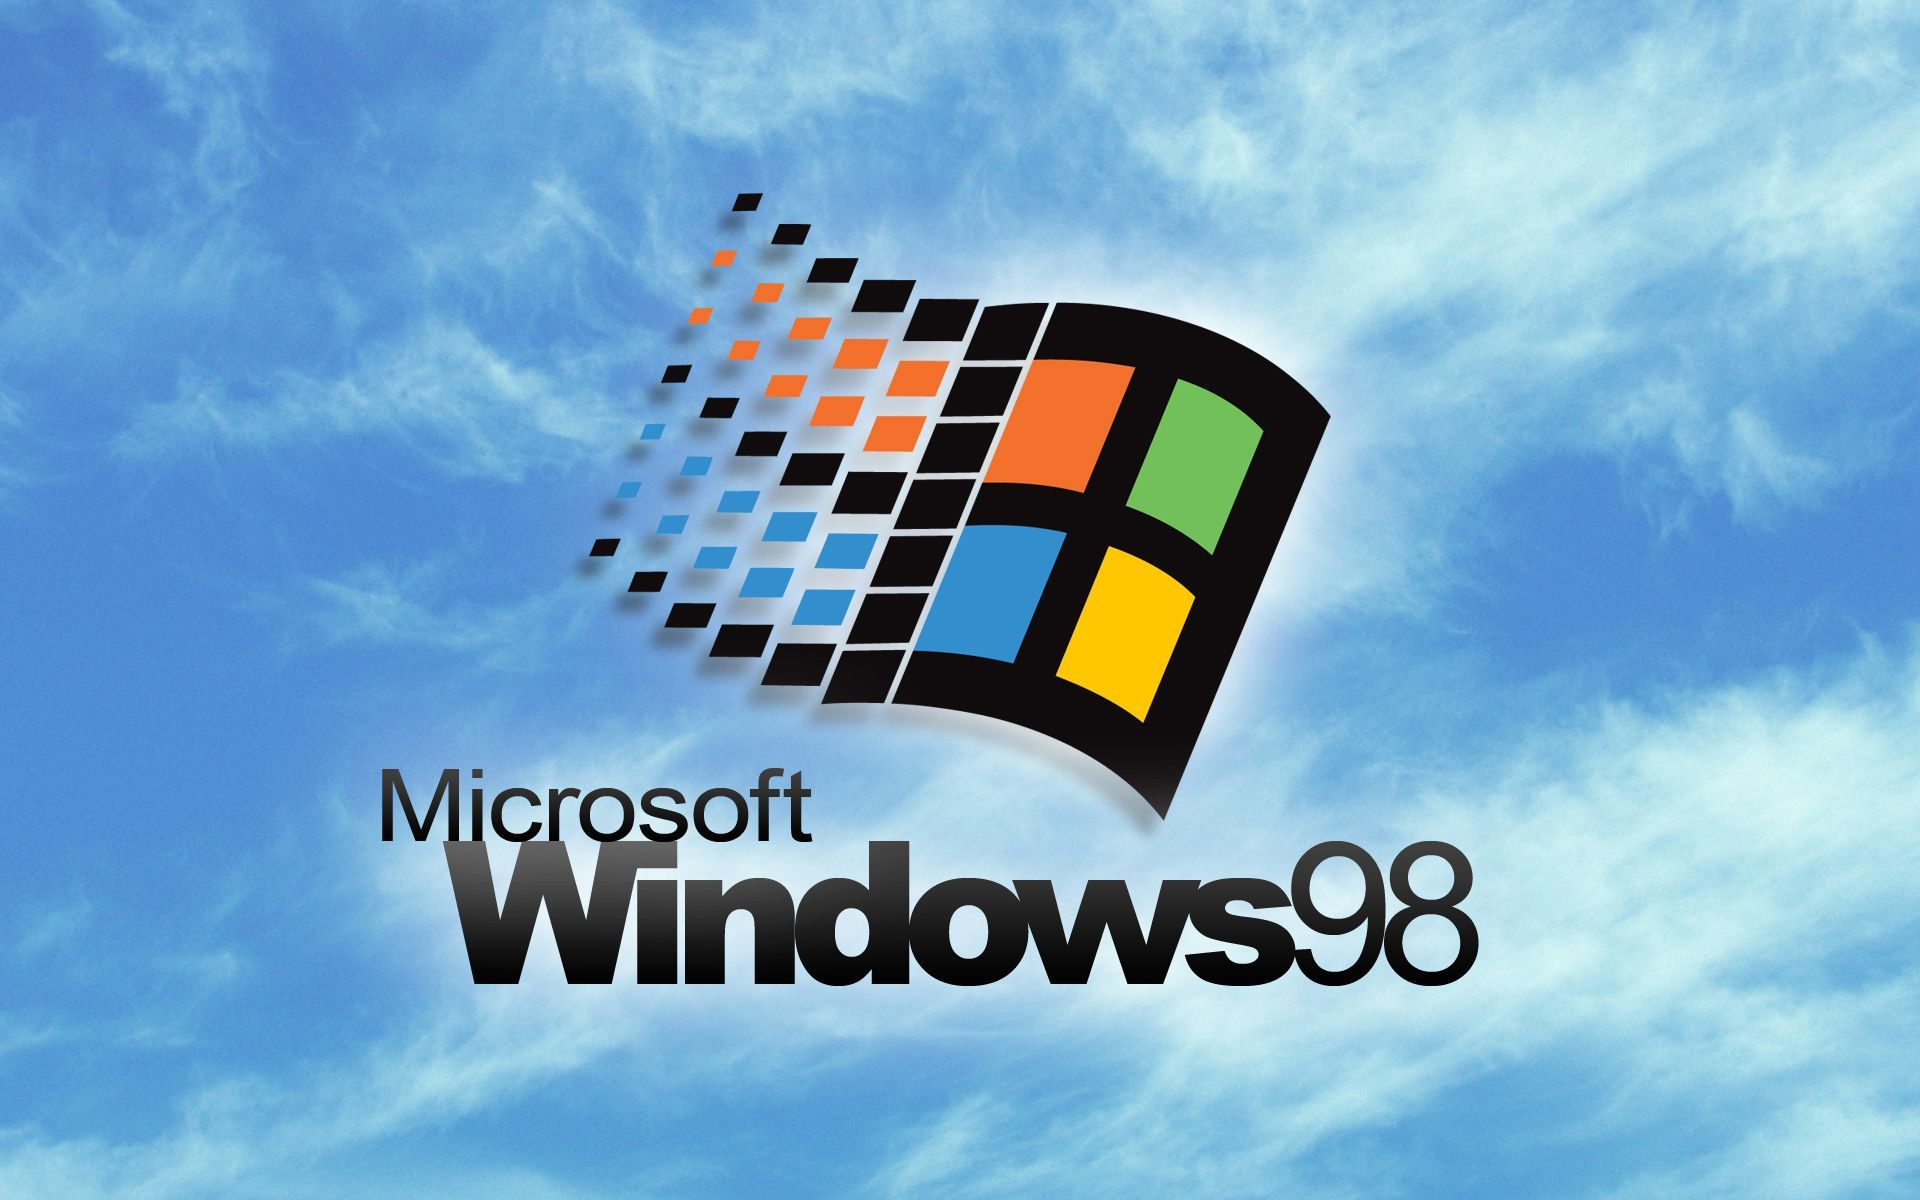 Windows 98 Desktop Wallpaper